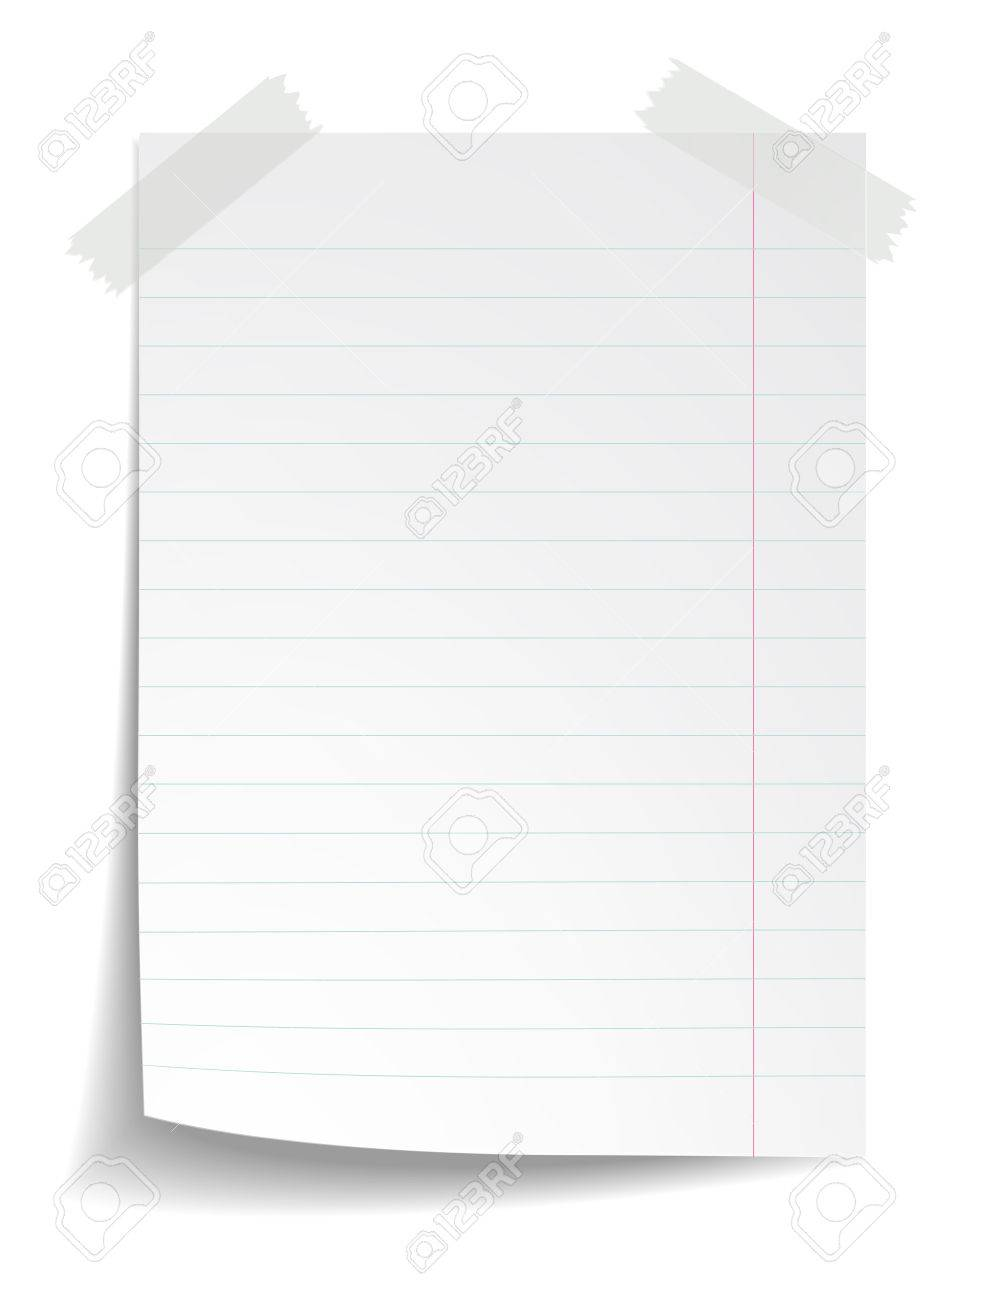 White Striped Notebook Paper On White Background Royalty Free Cliparts Vectors And Stock Illustration Image 30028644 Choose from 1000+ notebook paper graphic resources and download in the form of png, eps png images. 123rf com